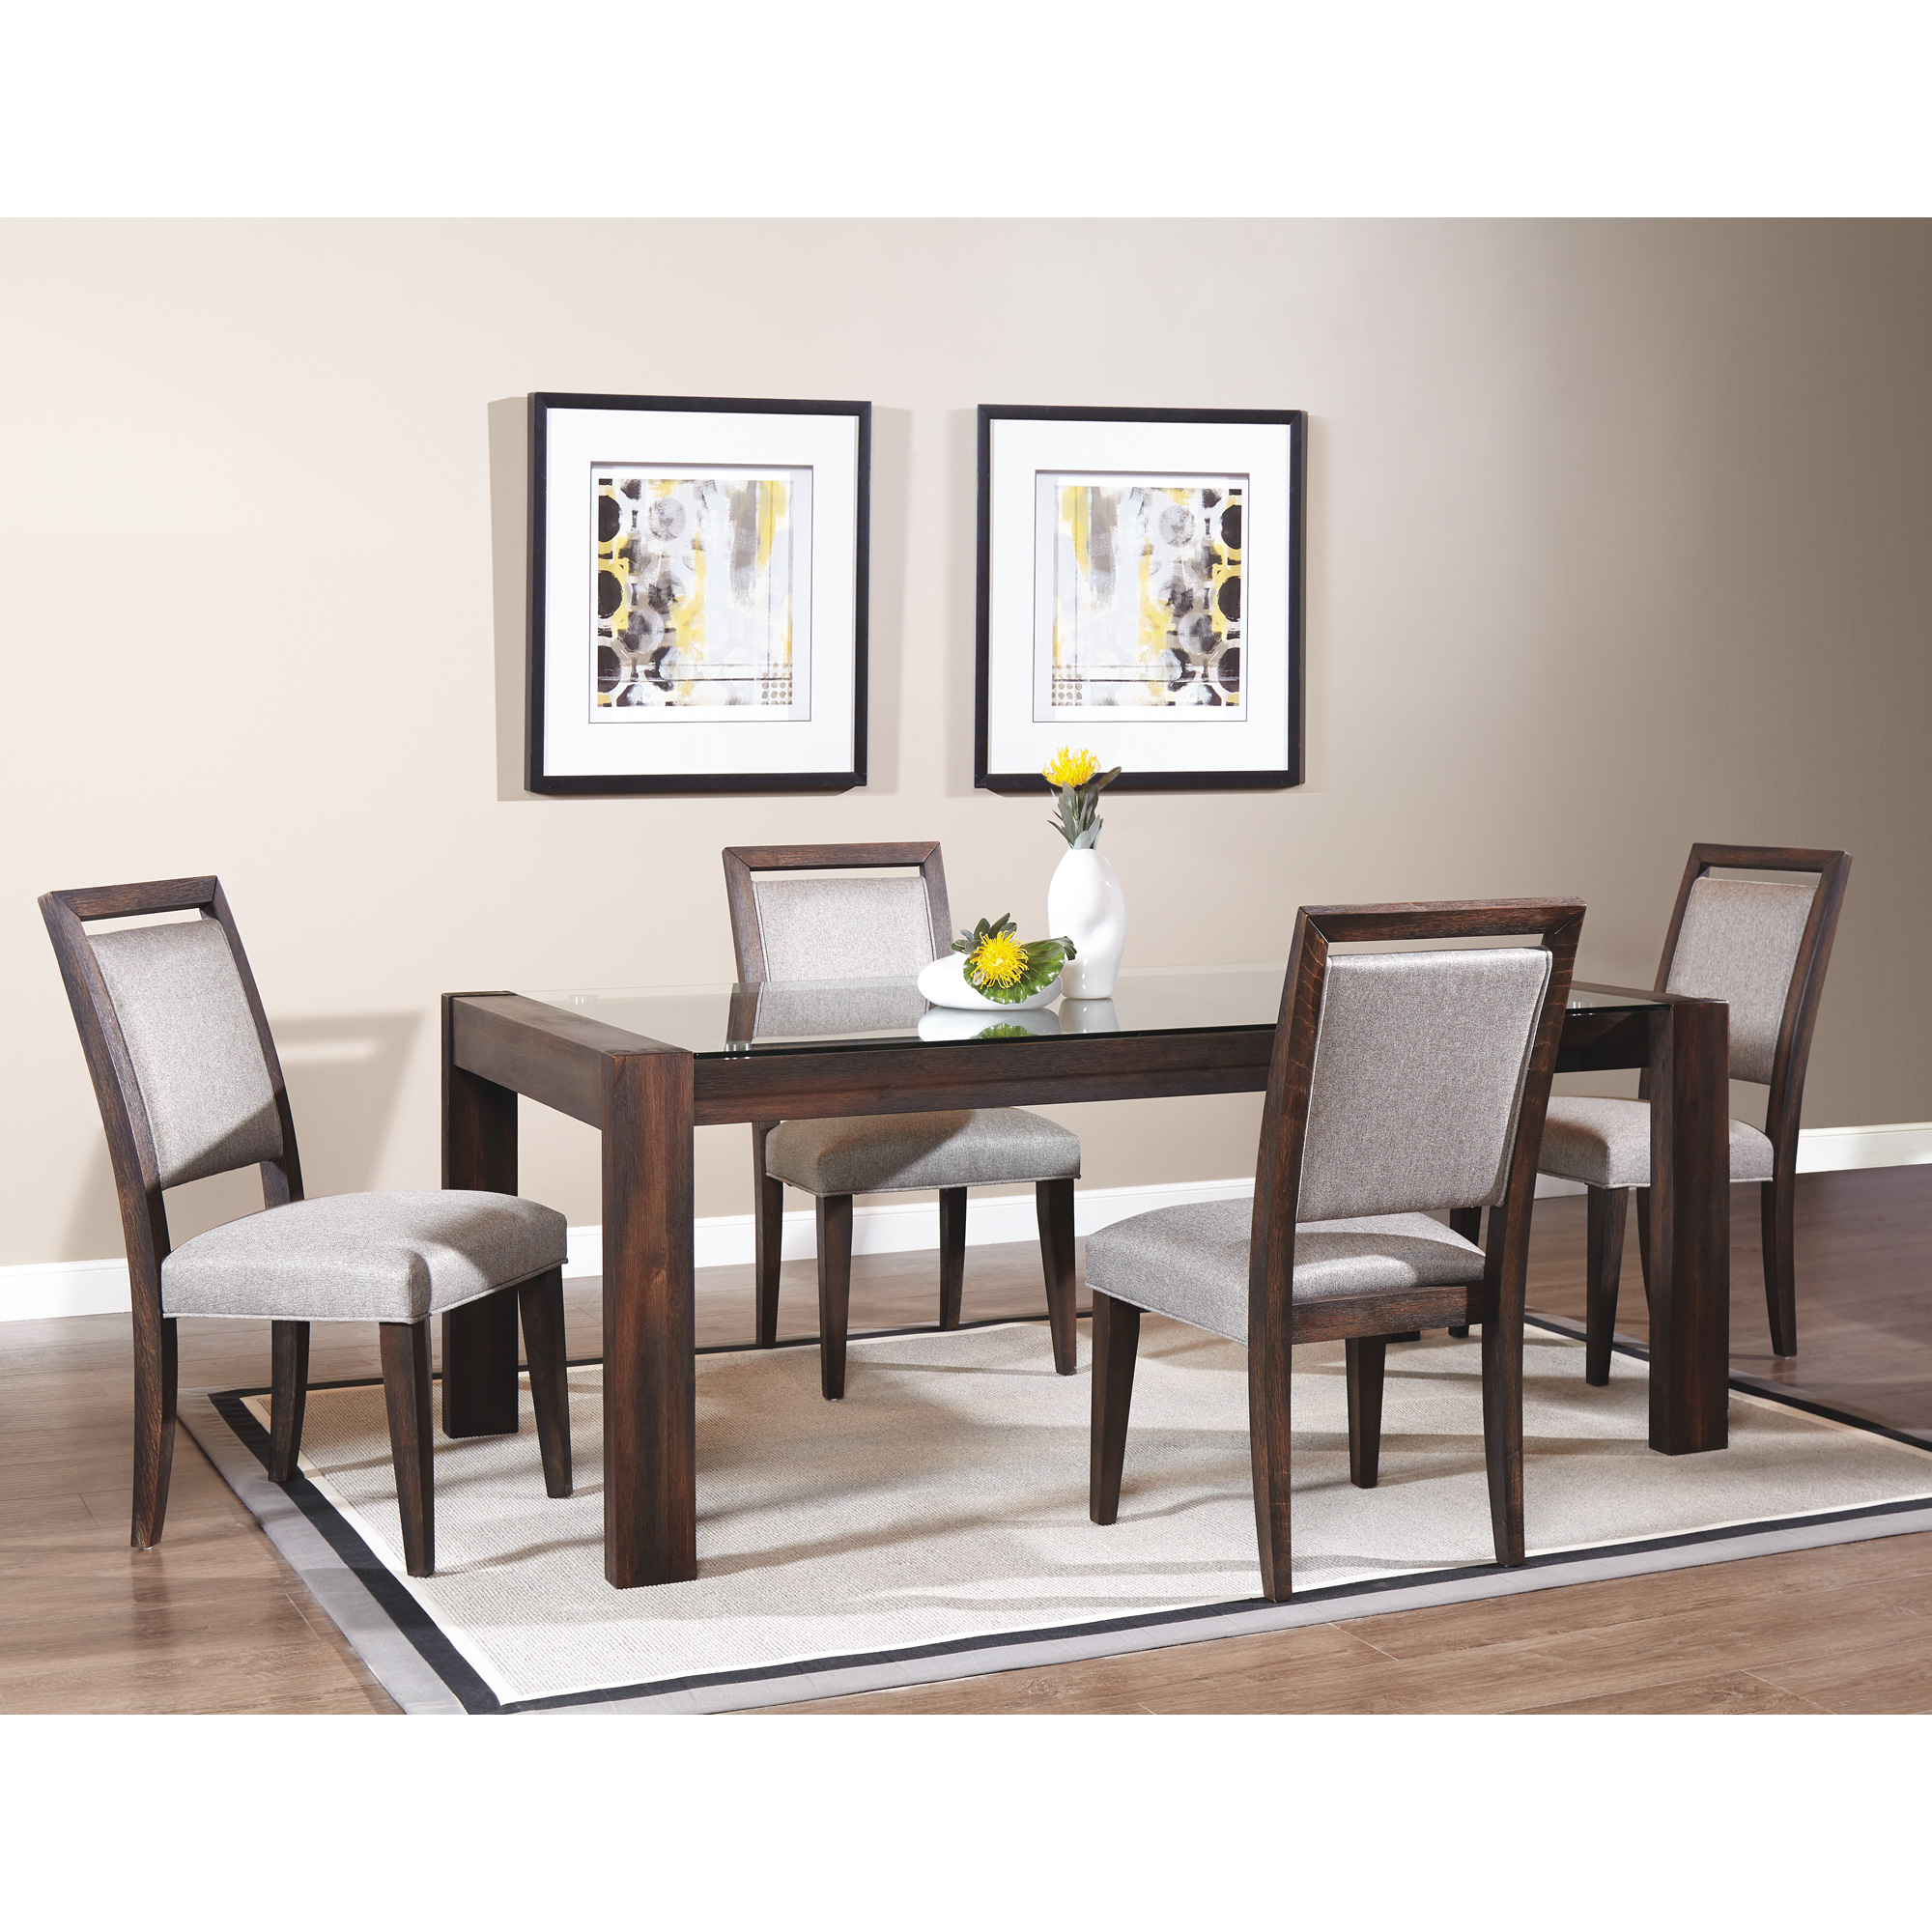 Davis Direct | Canyon Tobacco 5 Piece Dining Set